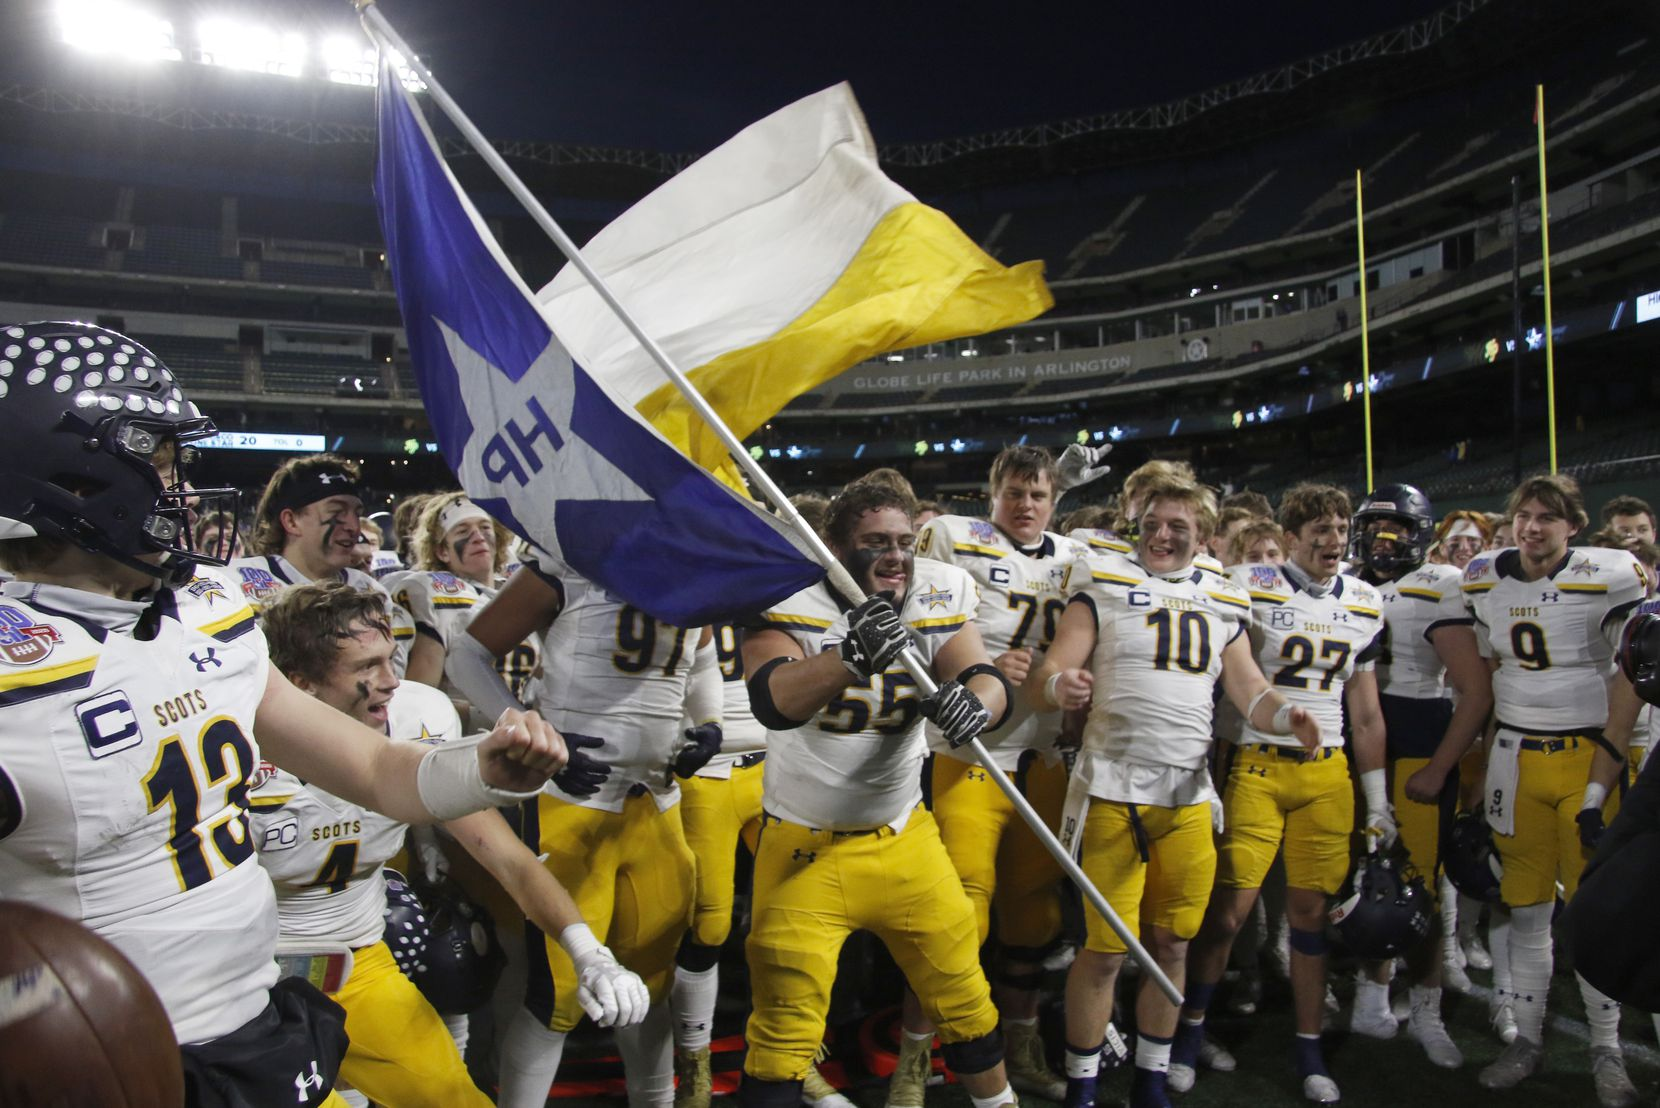 Highland Park offensive lineman Sam Morse (55) handles the flag waving duty as the Scots celebrate following their 30-20 victory over Frisco Lone Star. The two teams played their Class 5A Division l Region ll semifinal football playoff game held at Globe Life Park in Arlington on December 24, 2020. (Steve Hamm/ Special Contributor)